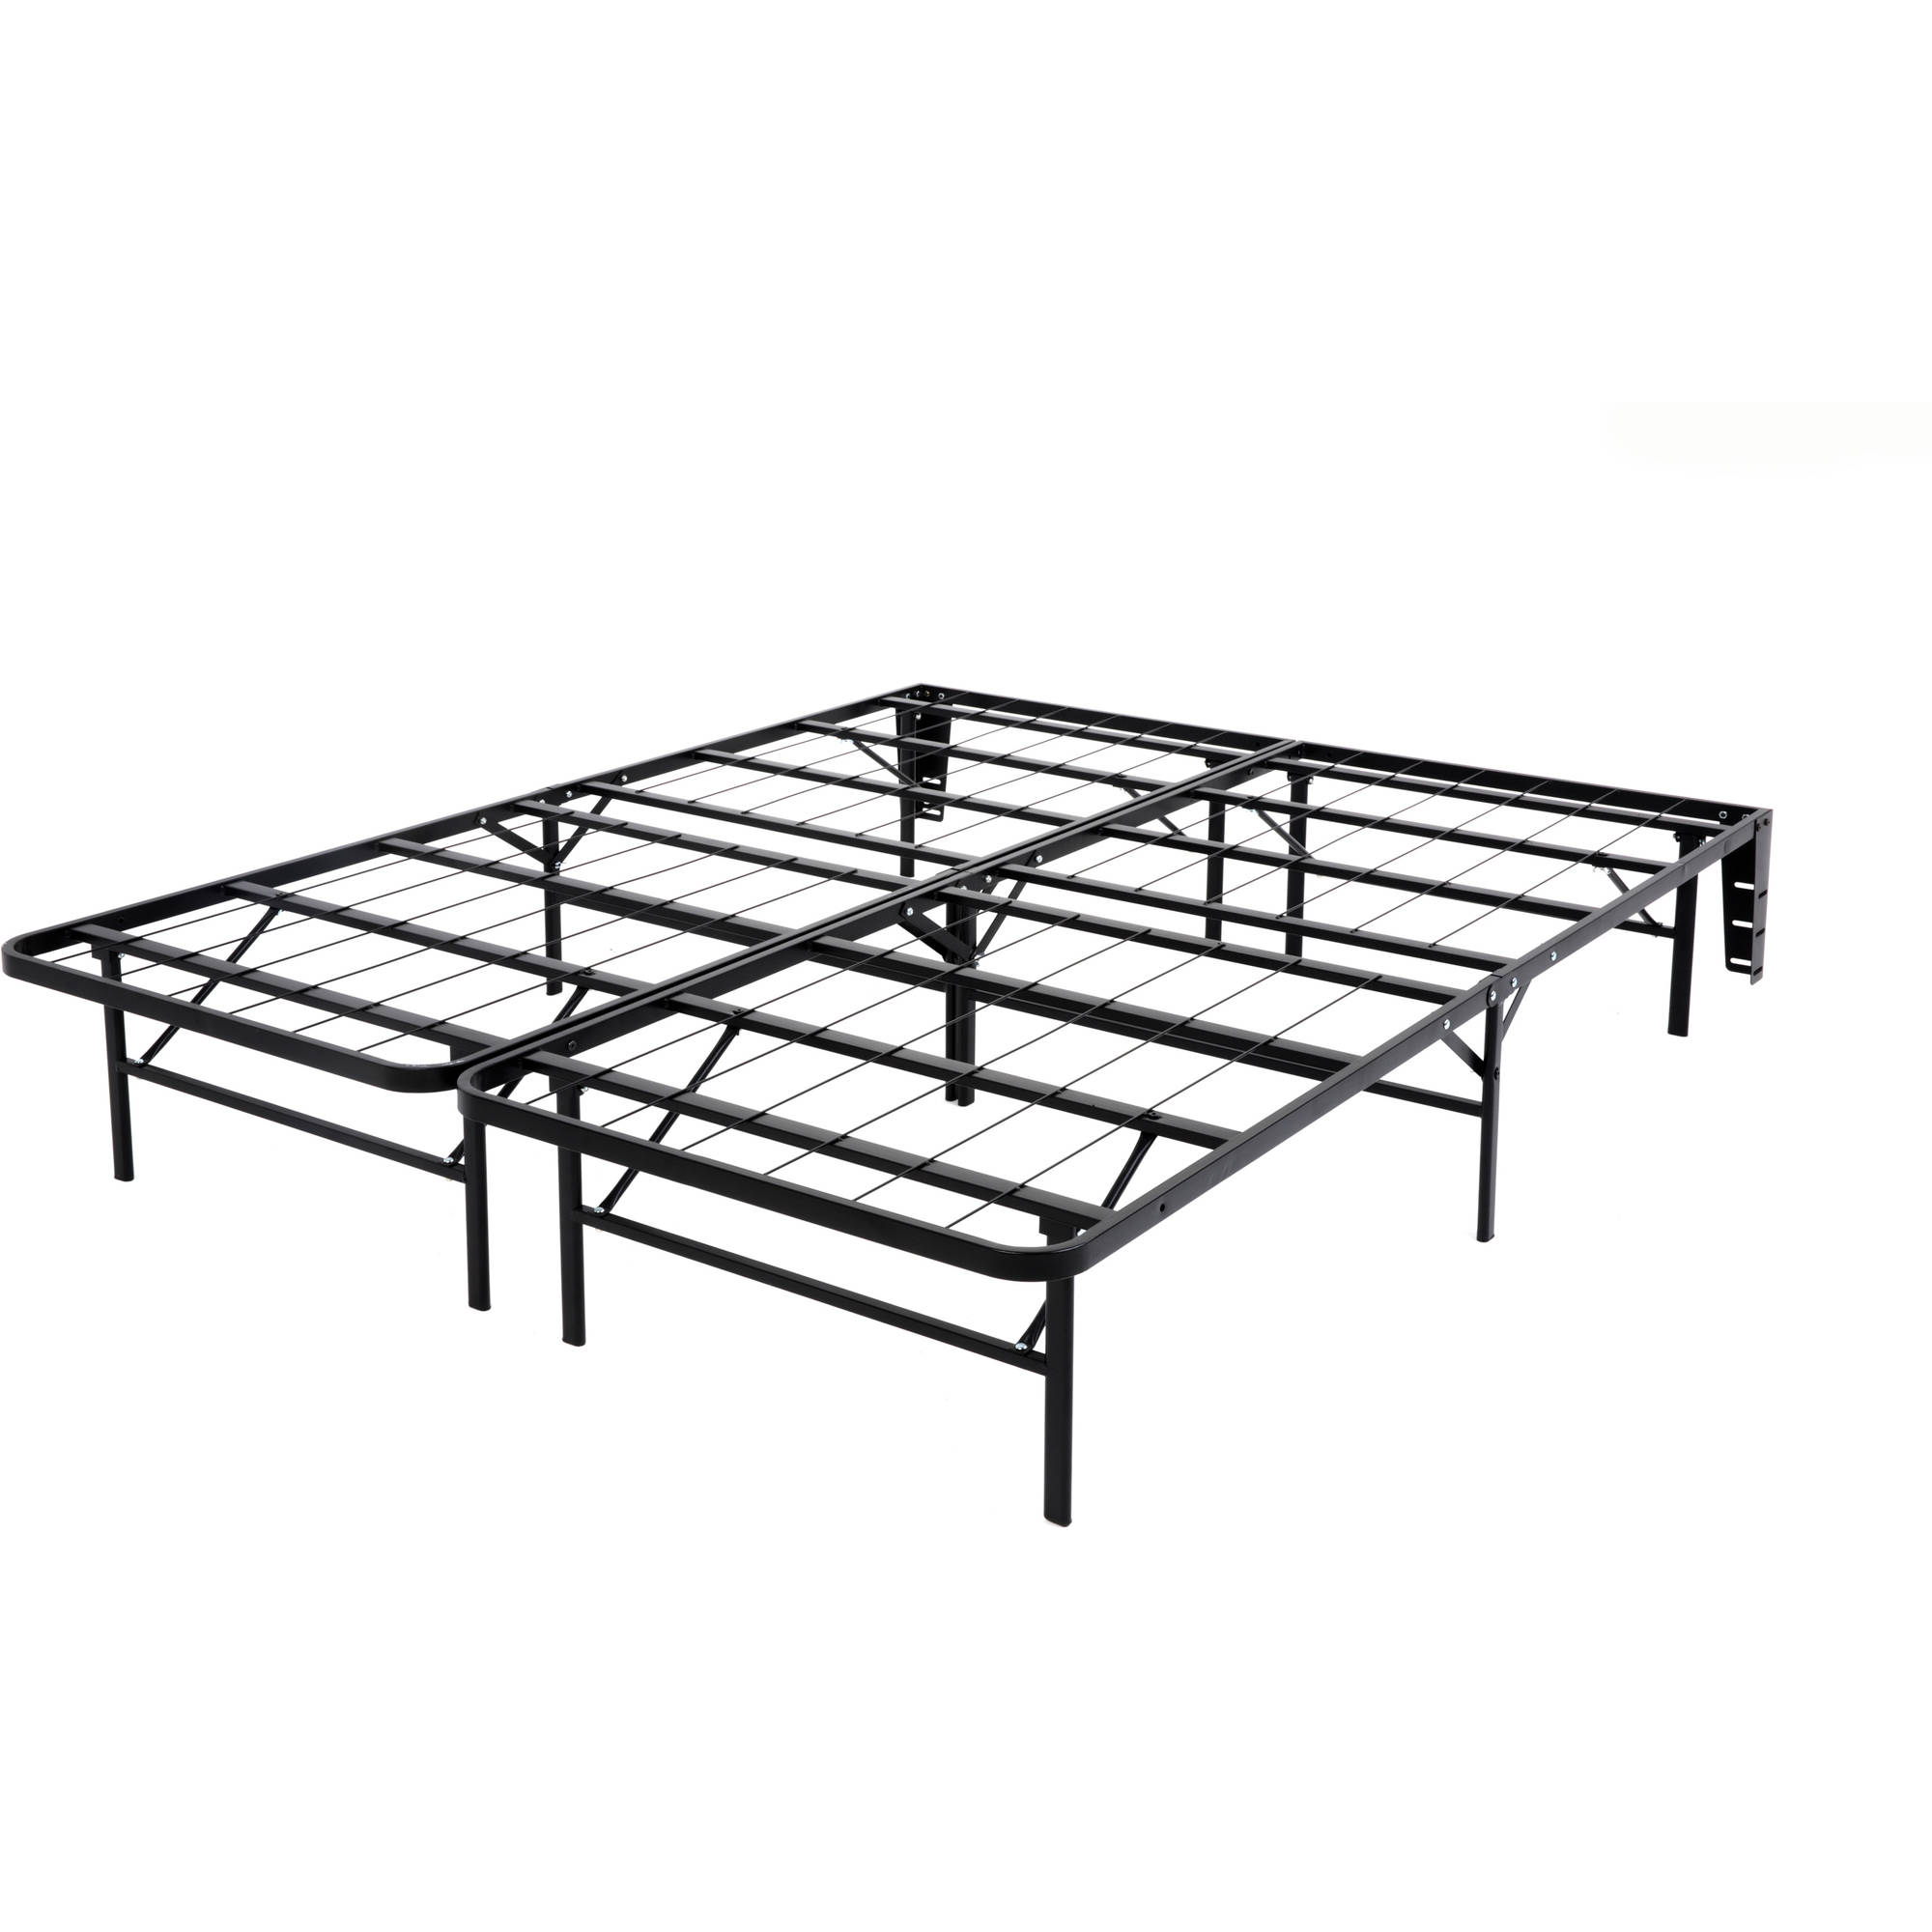 Fashion Bed Group by Leggett & Platt Atlas Base w/o MDF Deck, Multiple Sizes